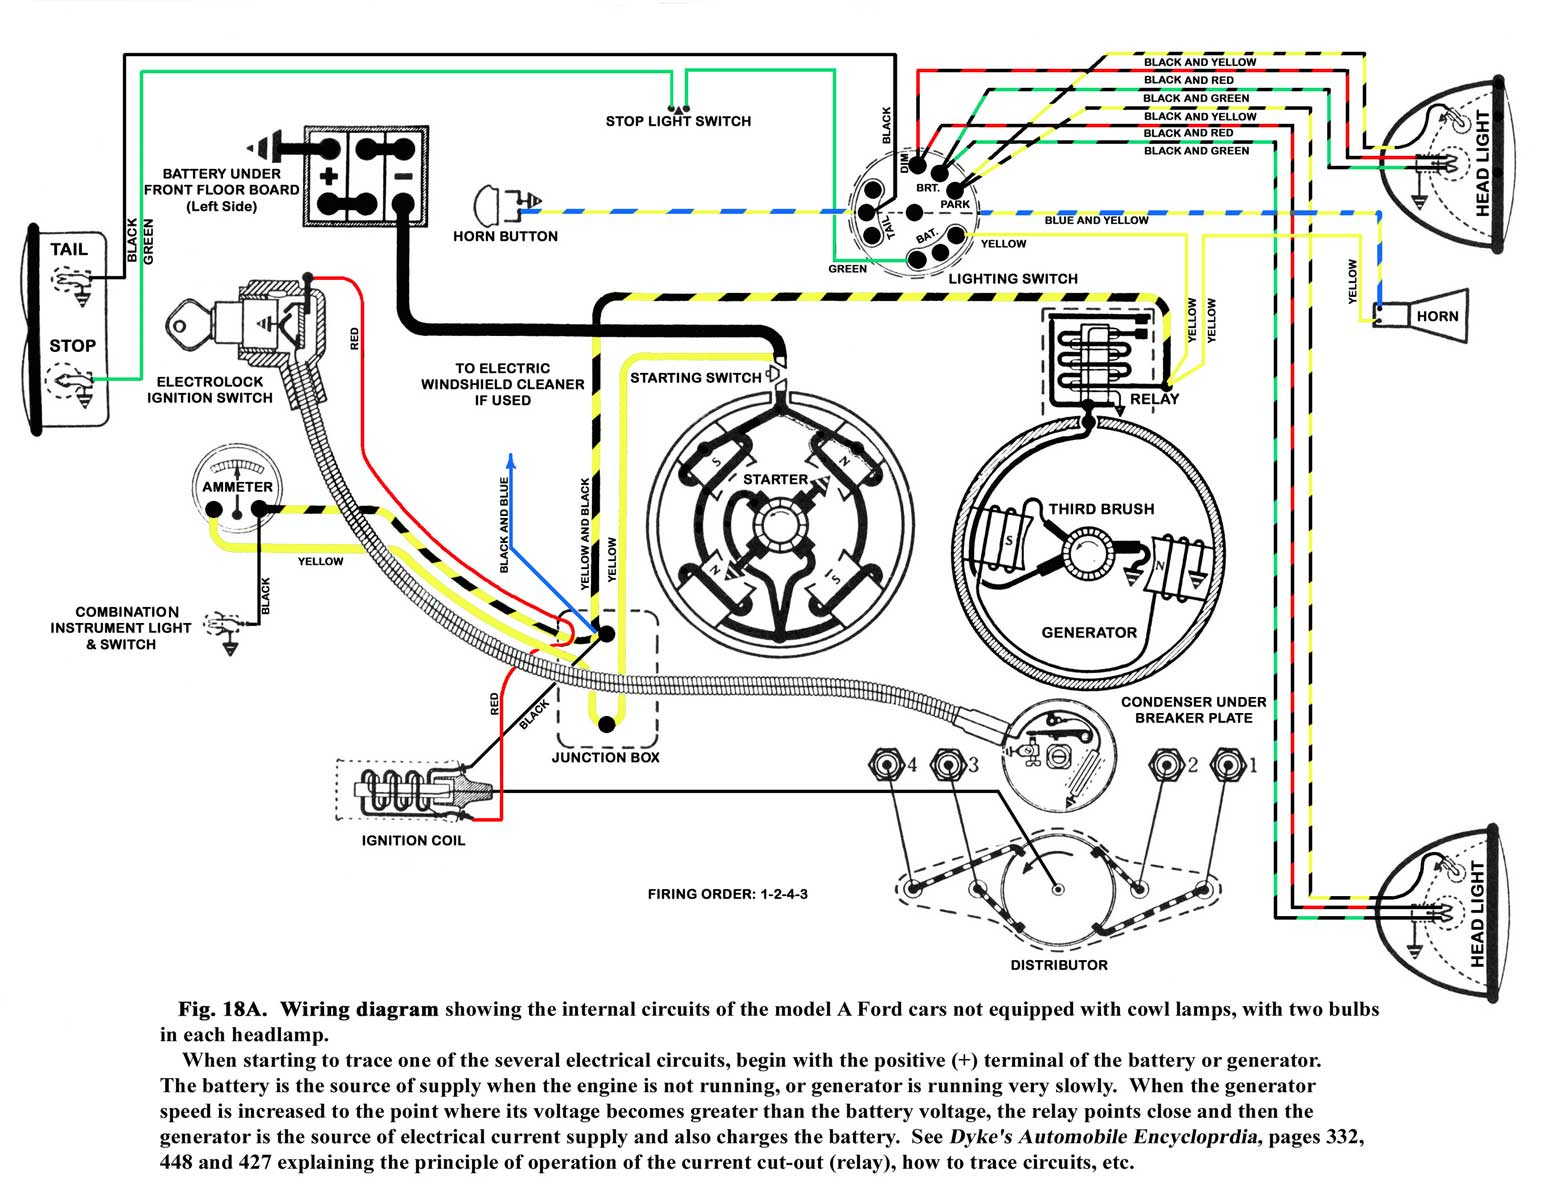 ford model a wiring diagram 6v wiring diagram origin ford tractor ignition switch wiring diagram ford [ 1546 x 1195 Pixel ]